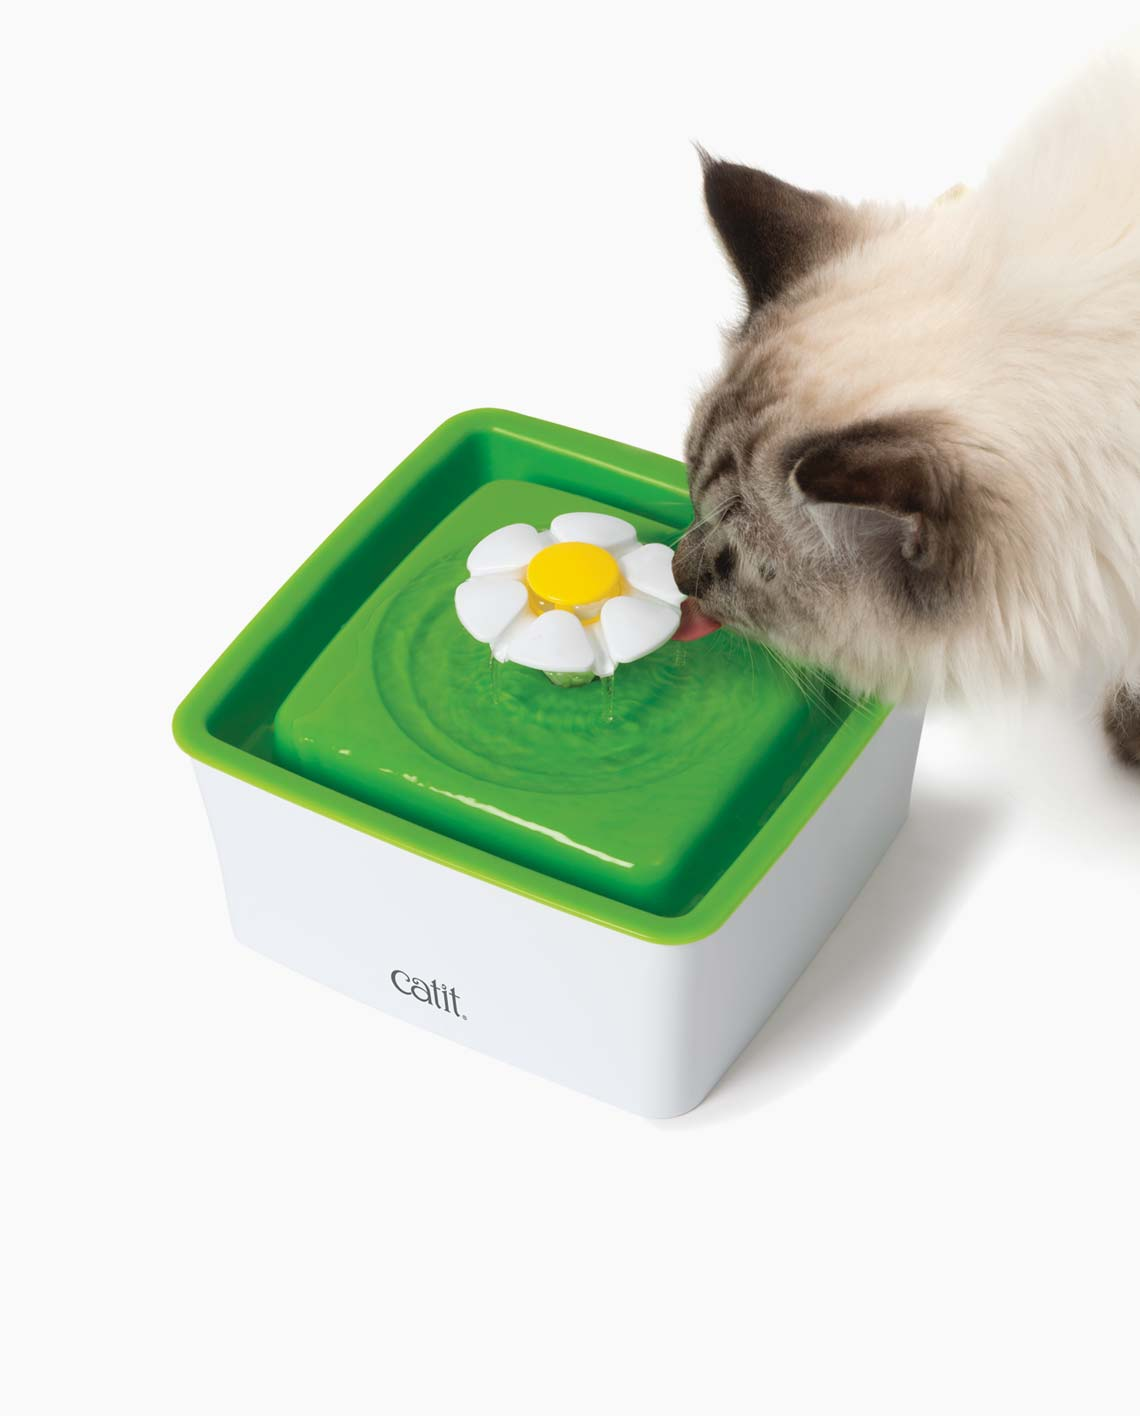 Cat drinking from a mini Catit flower fountain